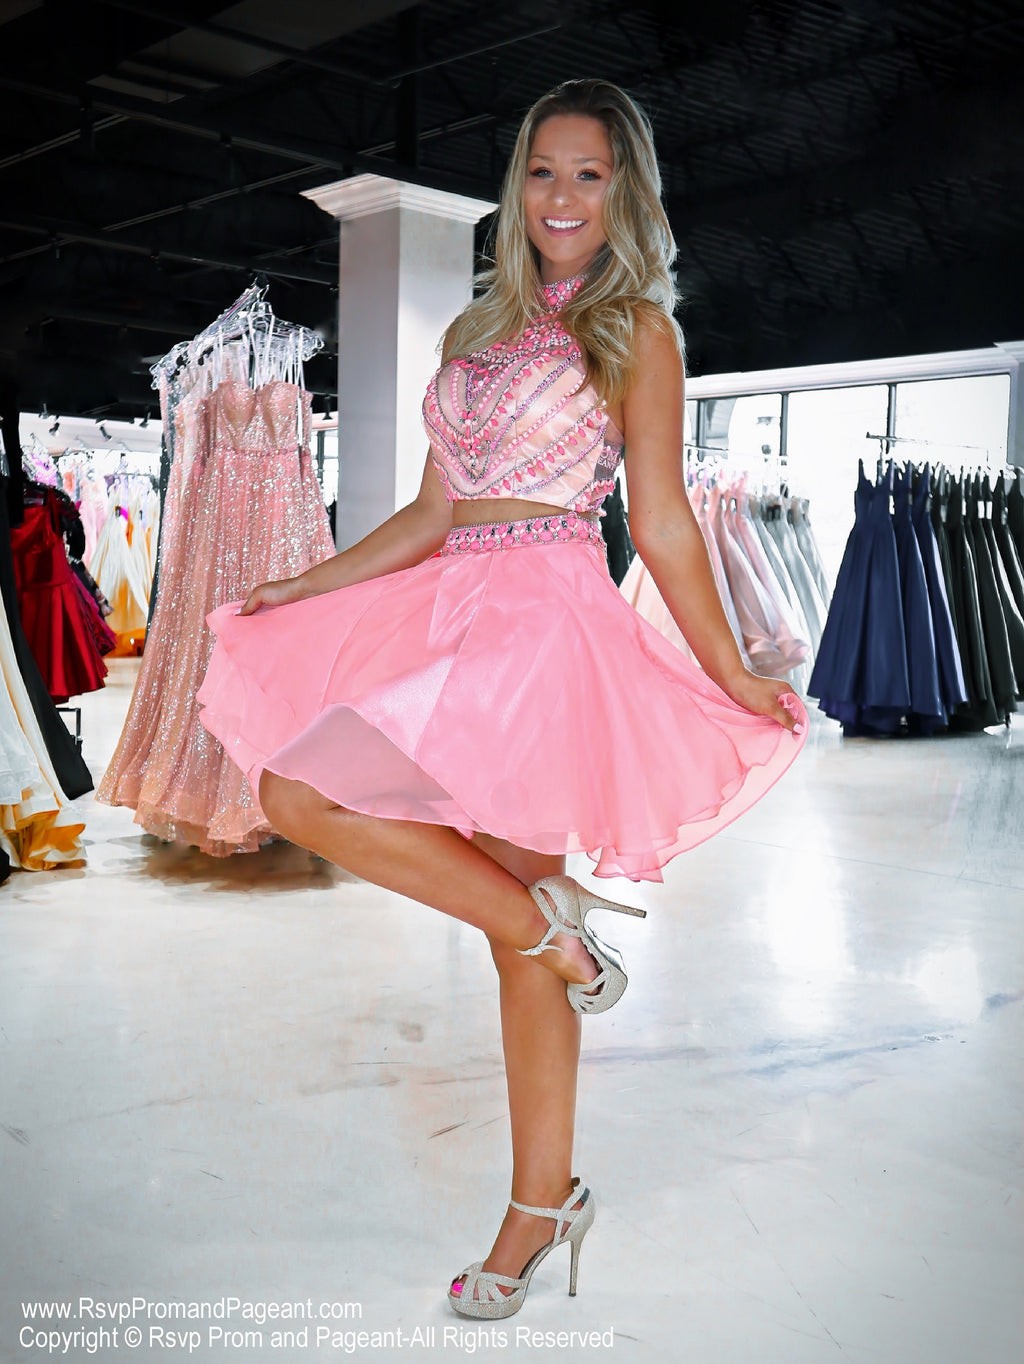 Model standing on one leg in the Cute Coral Two Piece Homecoming Dress with Beaded Crop Top at Rsvp Prom and Pageant, which is the largest prom brand and located in metro Atlanta, Georgia